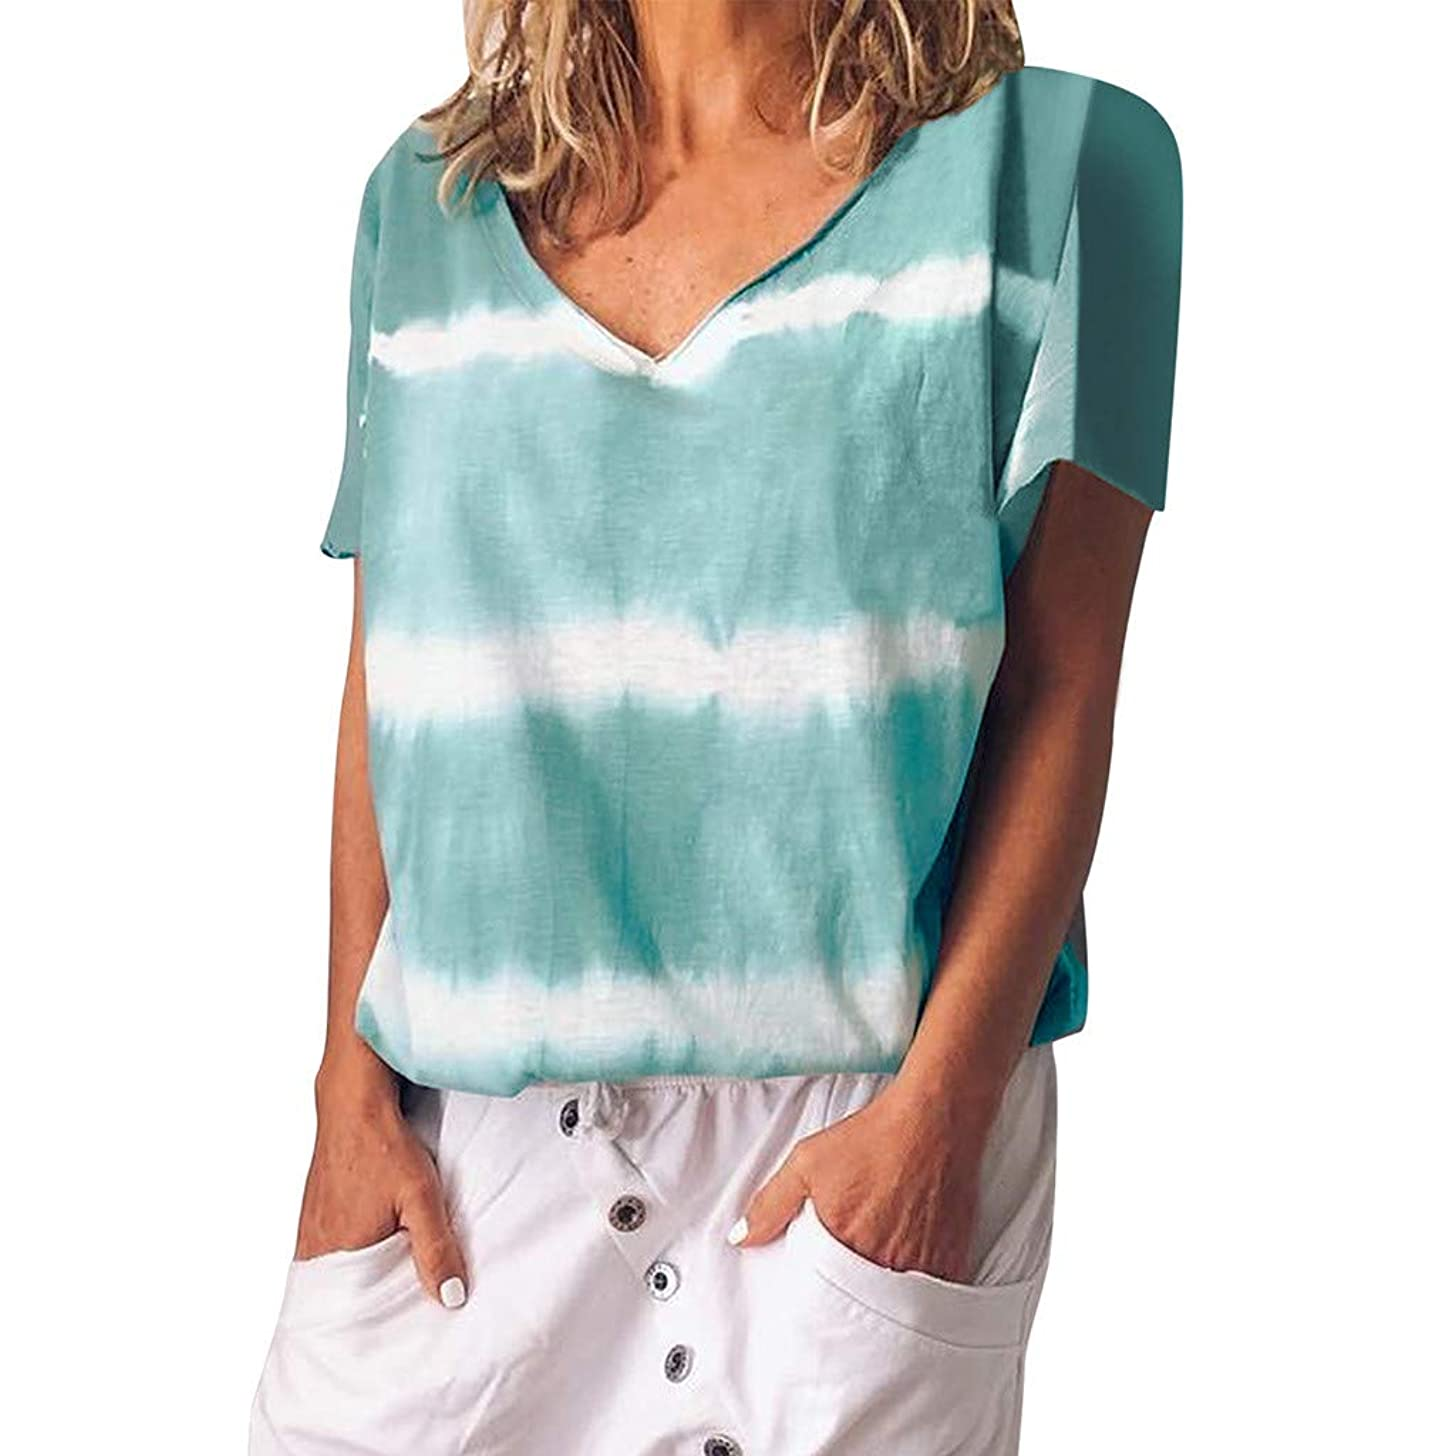 Nadition Casual T-Shirt for Ladies ??? Women Fashion Tie Dyeing Short Sleeve T-Shirt Casual Loose Soft Cotton Tops Blouse